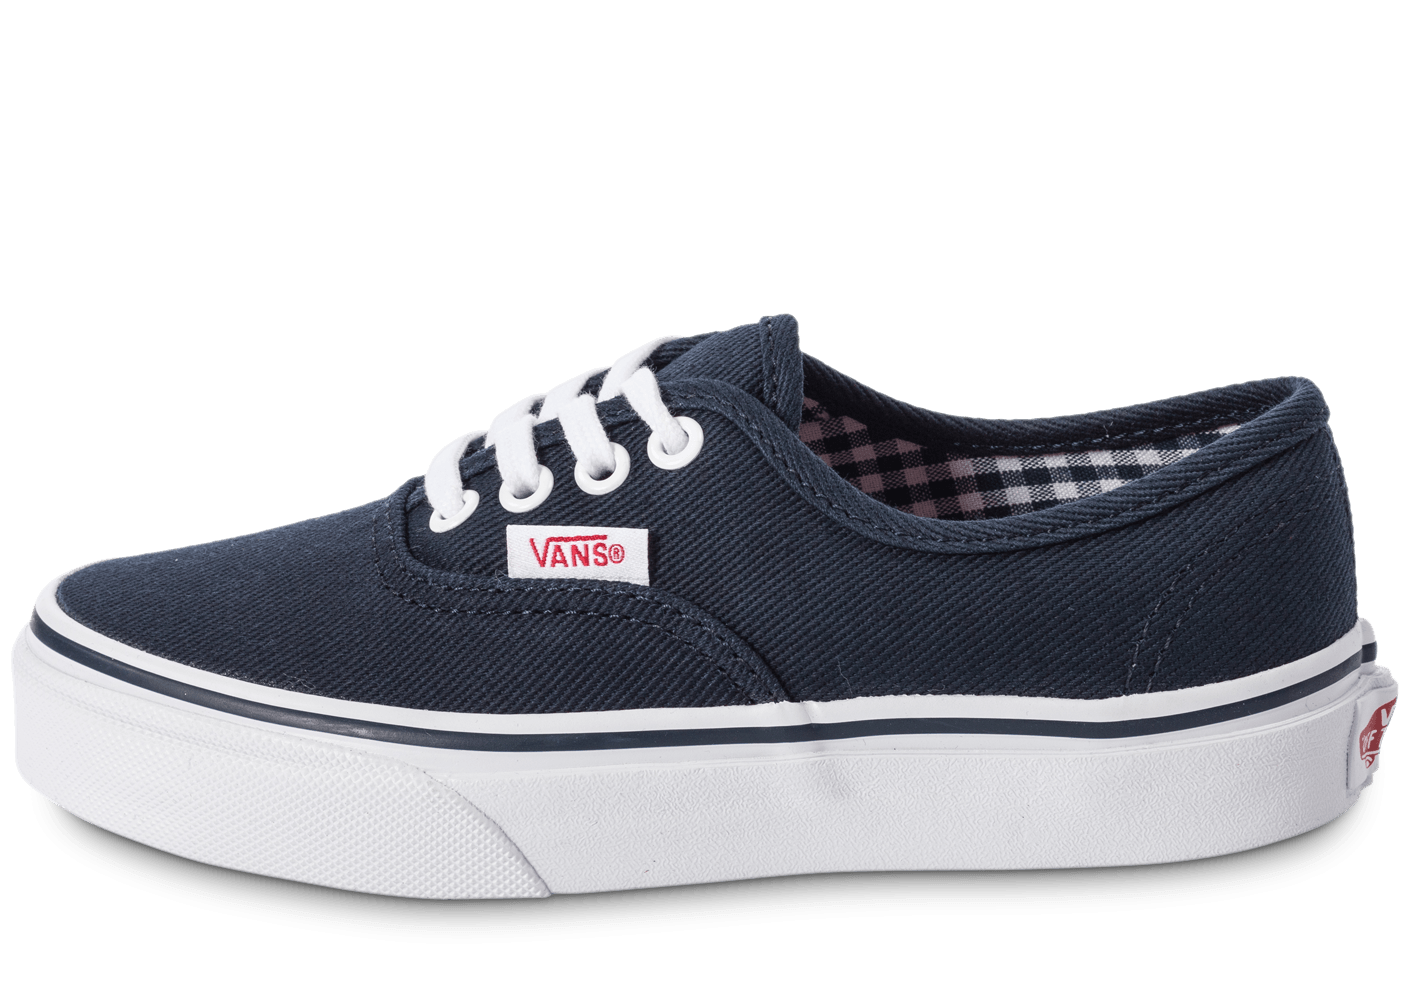 vans authentic enfant bleu marine chaussures chaussures chausport. Black Bedroom Furniture Sets. Home Design Ideas